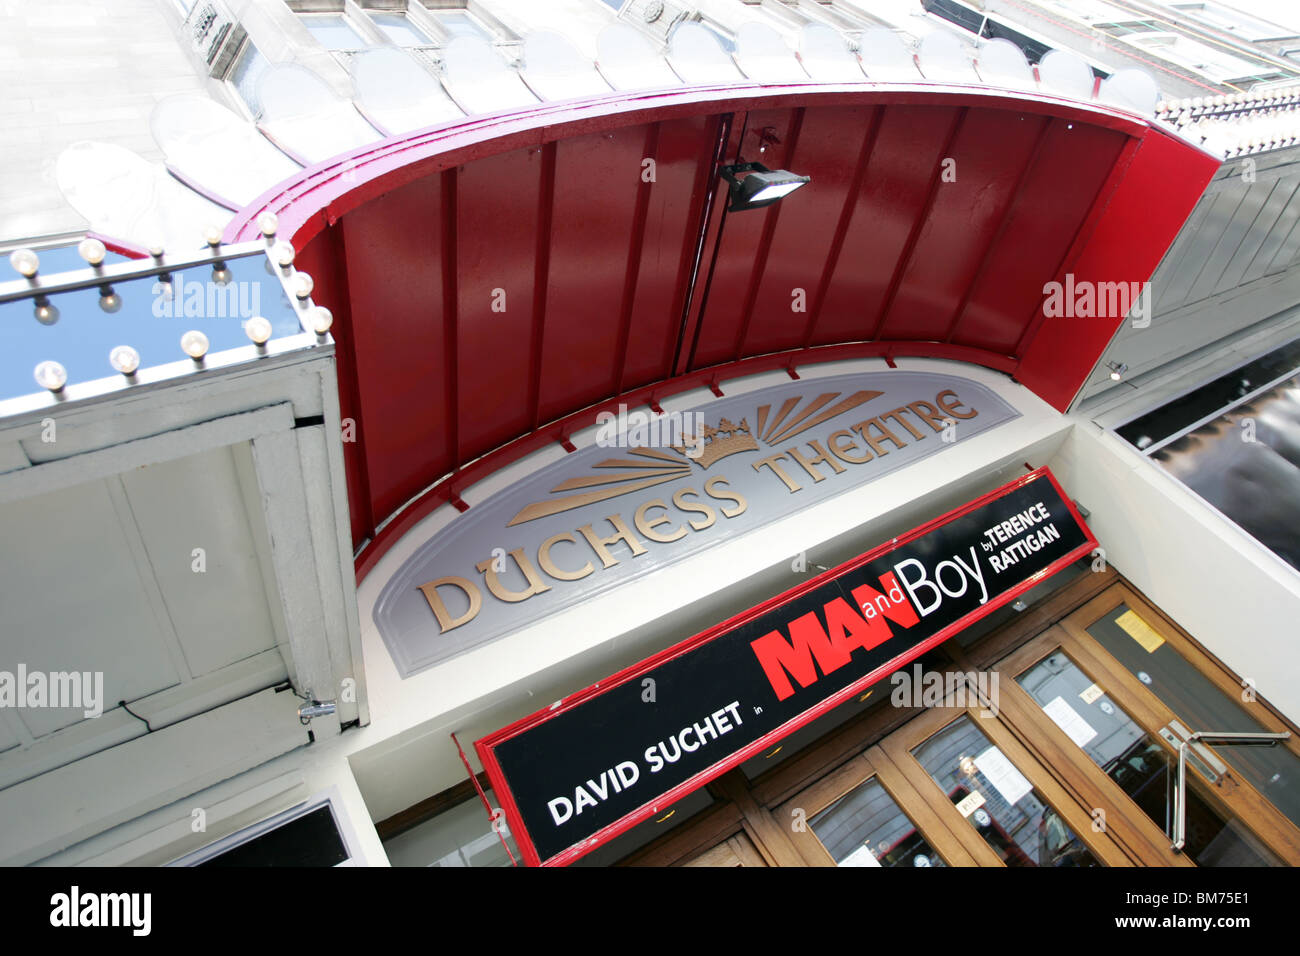 The Duchess Theatre, London - Stock Image